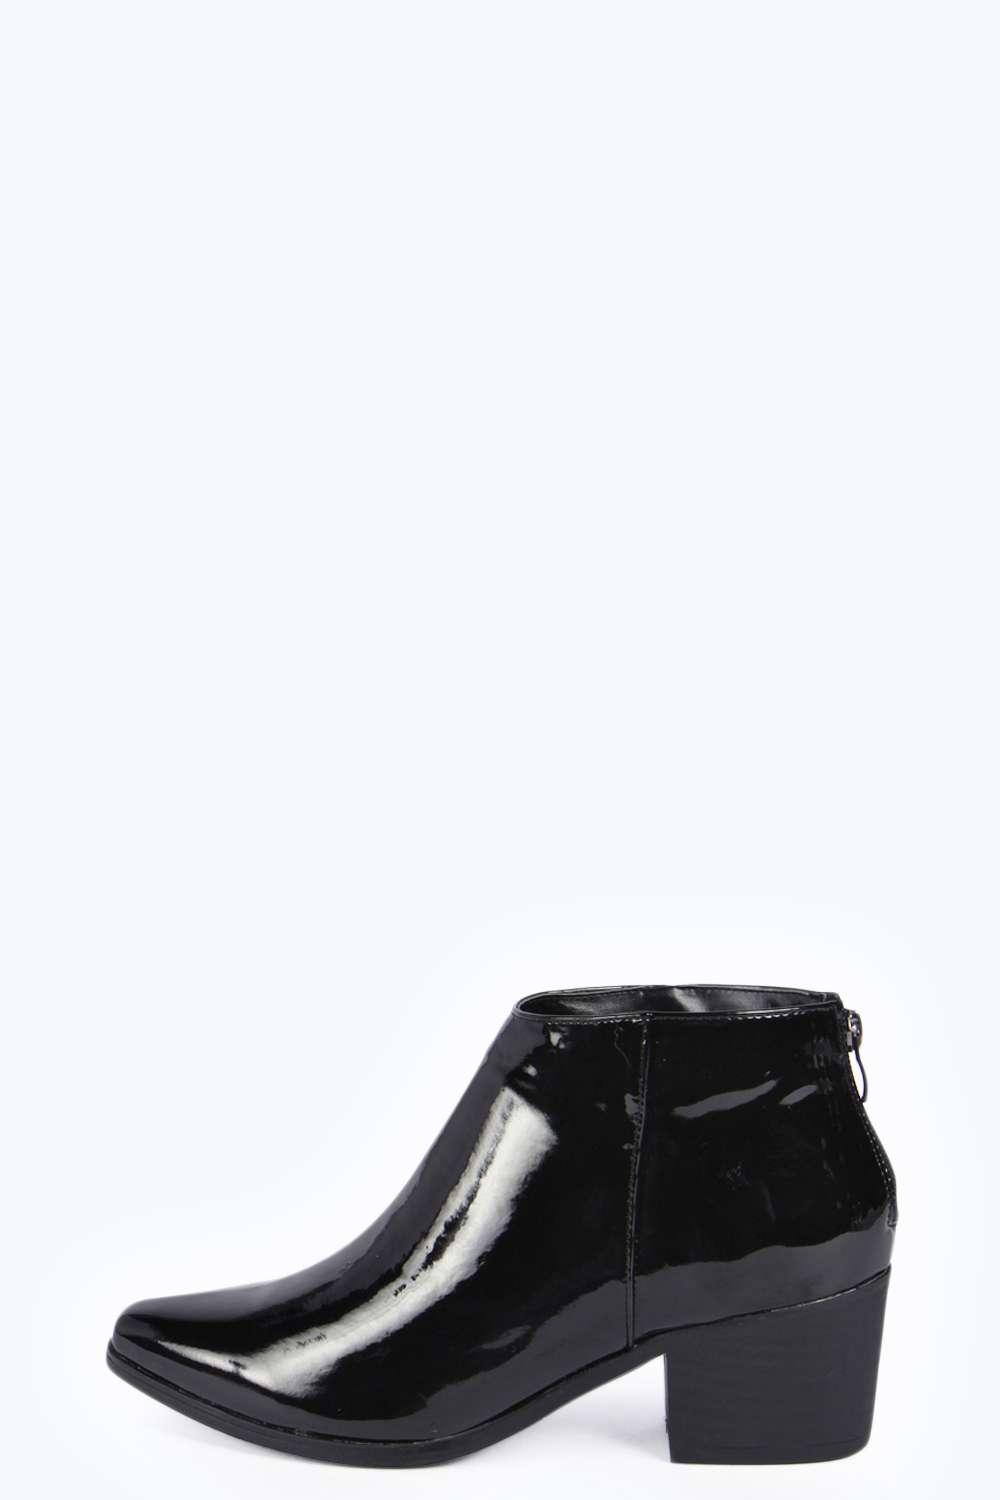 Jaxx pointed patent ankle boots